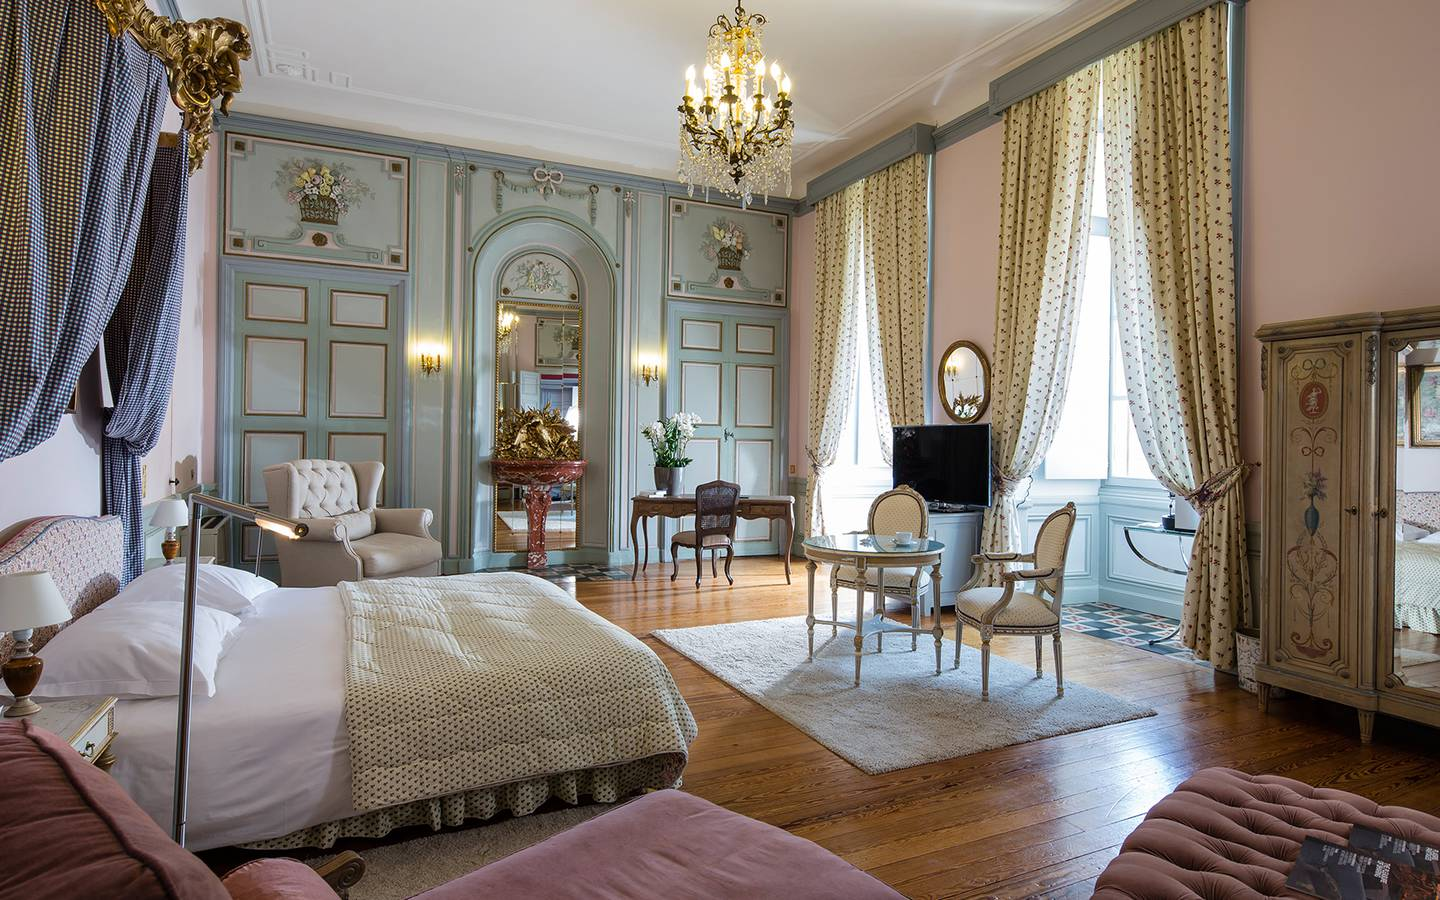 Beautiful chambre dhotel de luxe ideas for Chambre chateau